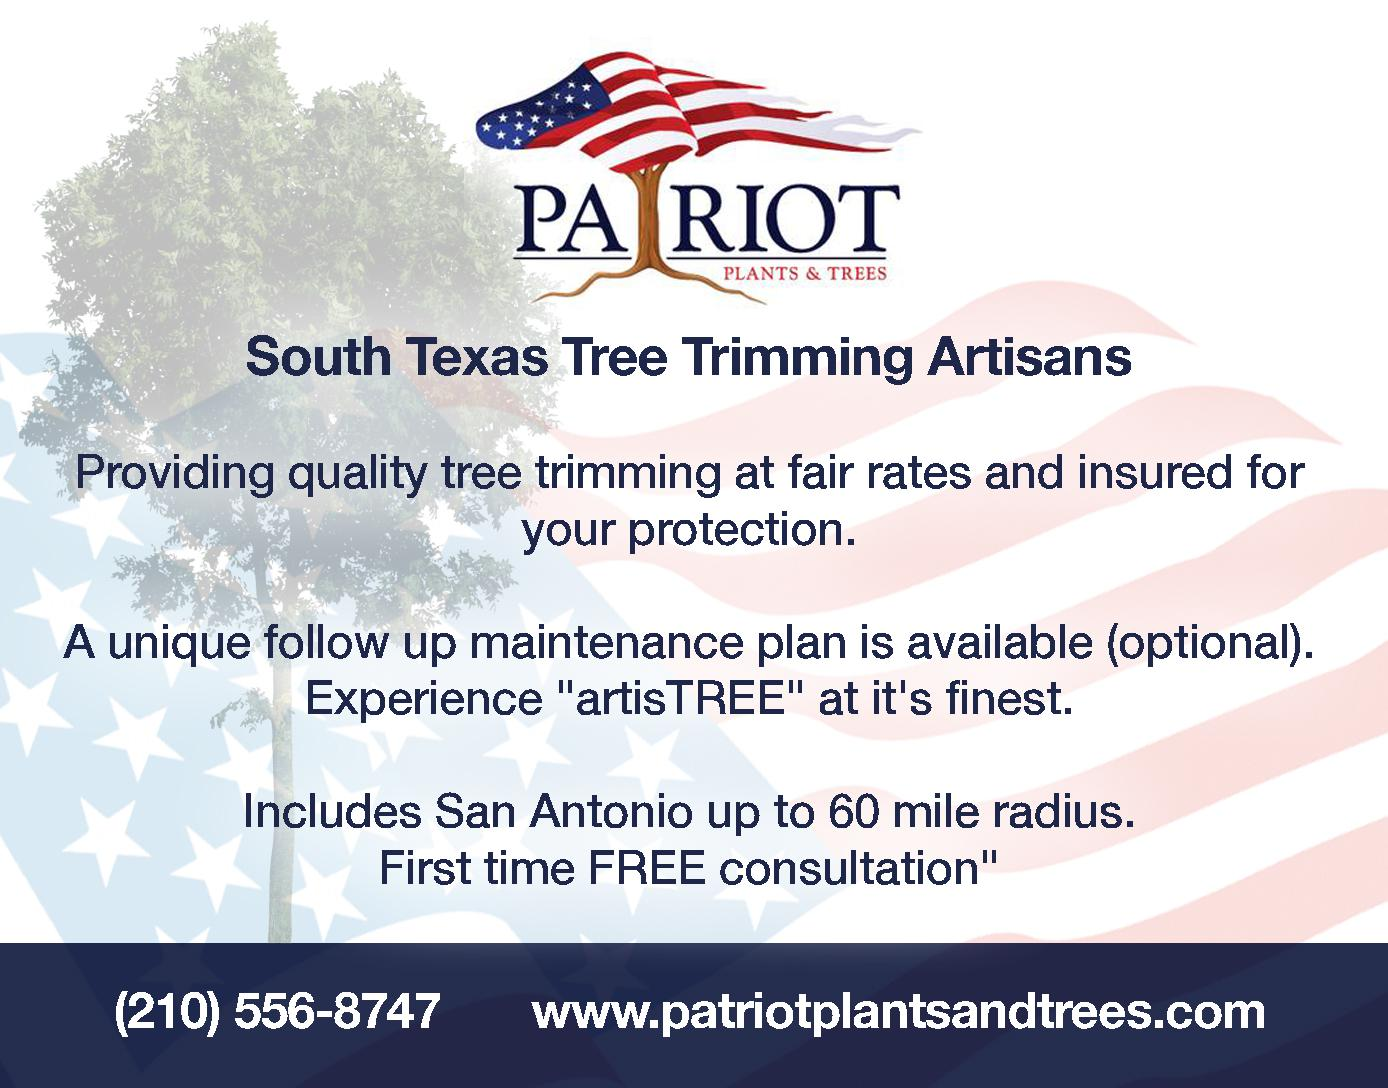 Patriot Plants and Trees